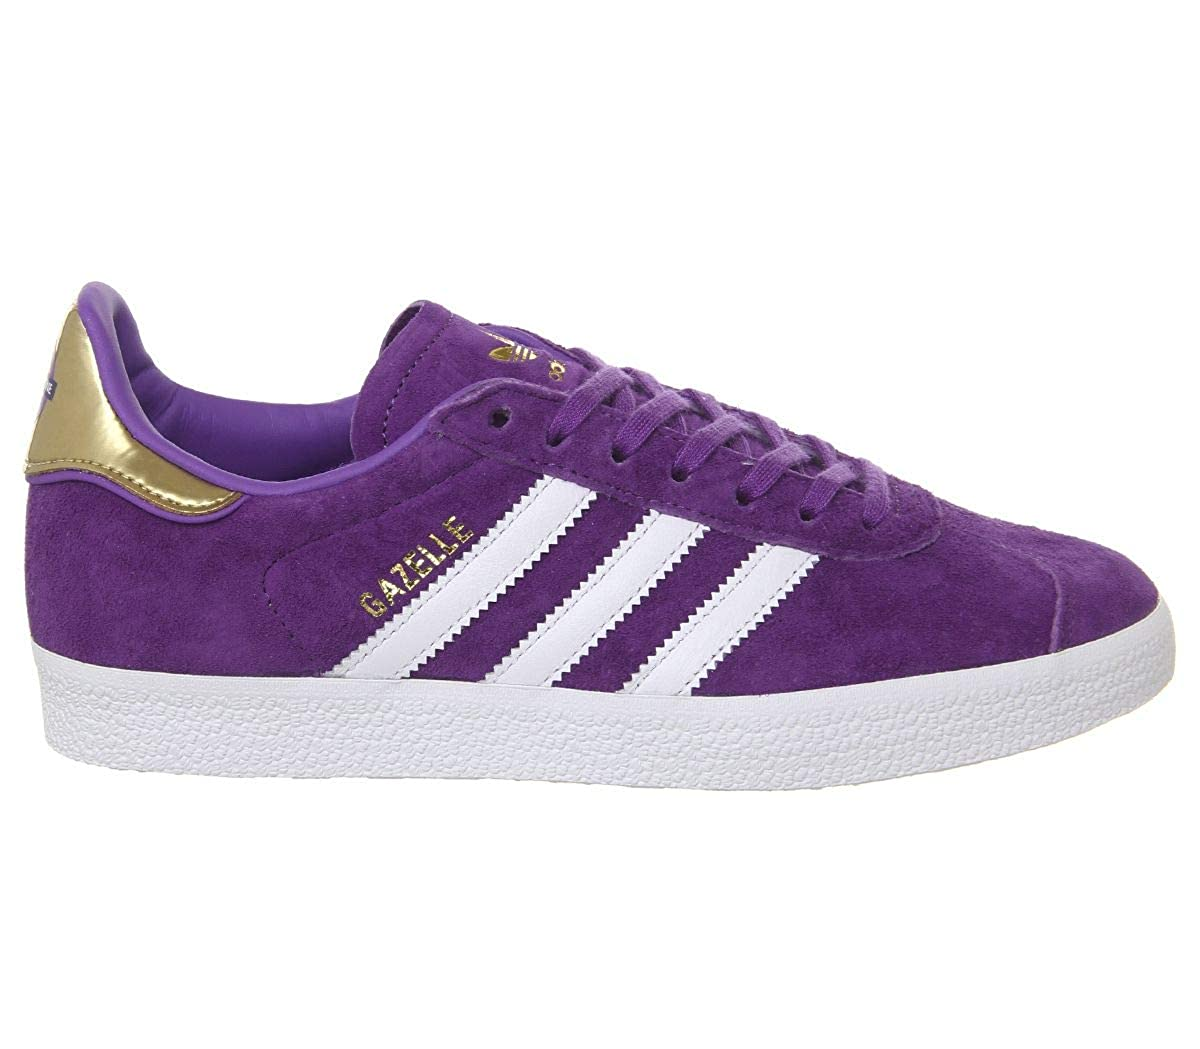 best sneakers 02534 bb7c1 adidas Unisex Adult Gazelle Low Top, Black, 40 2 3 EU  Amazon.co.uk  Shoes    Bags